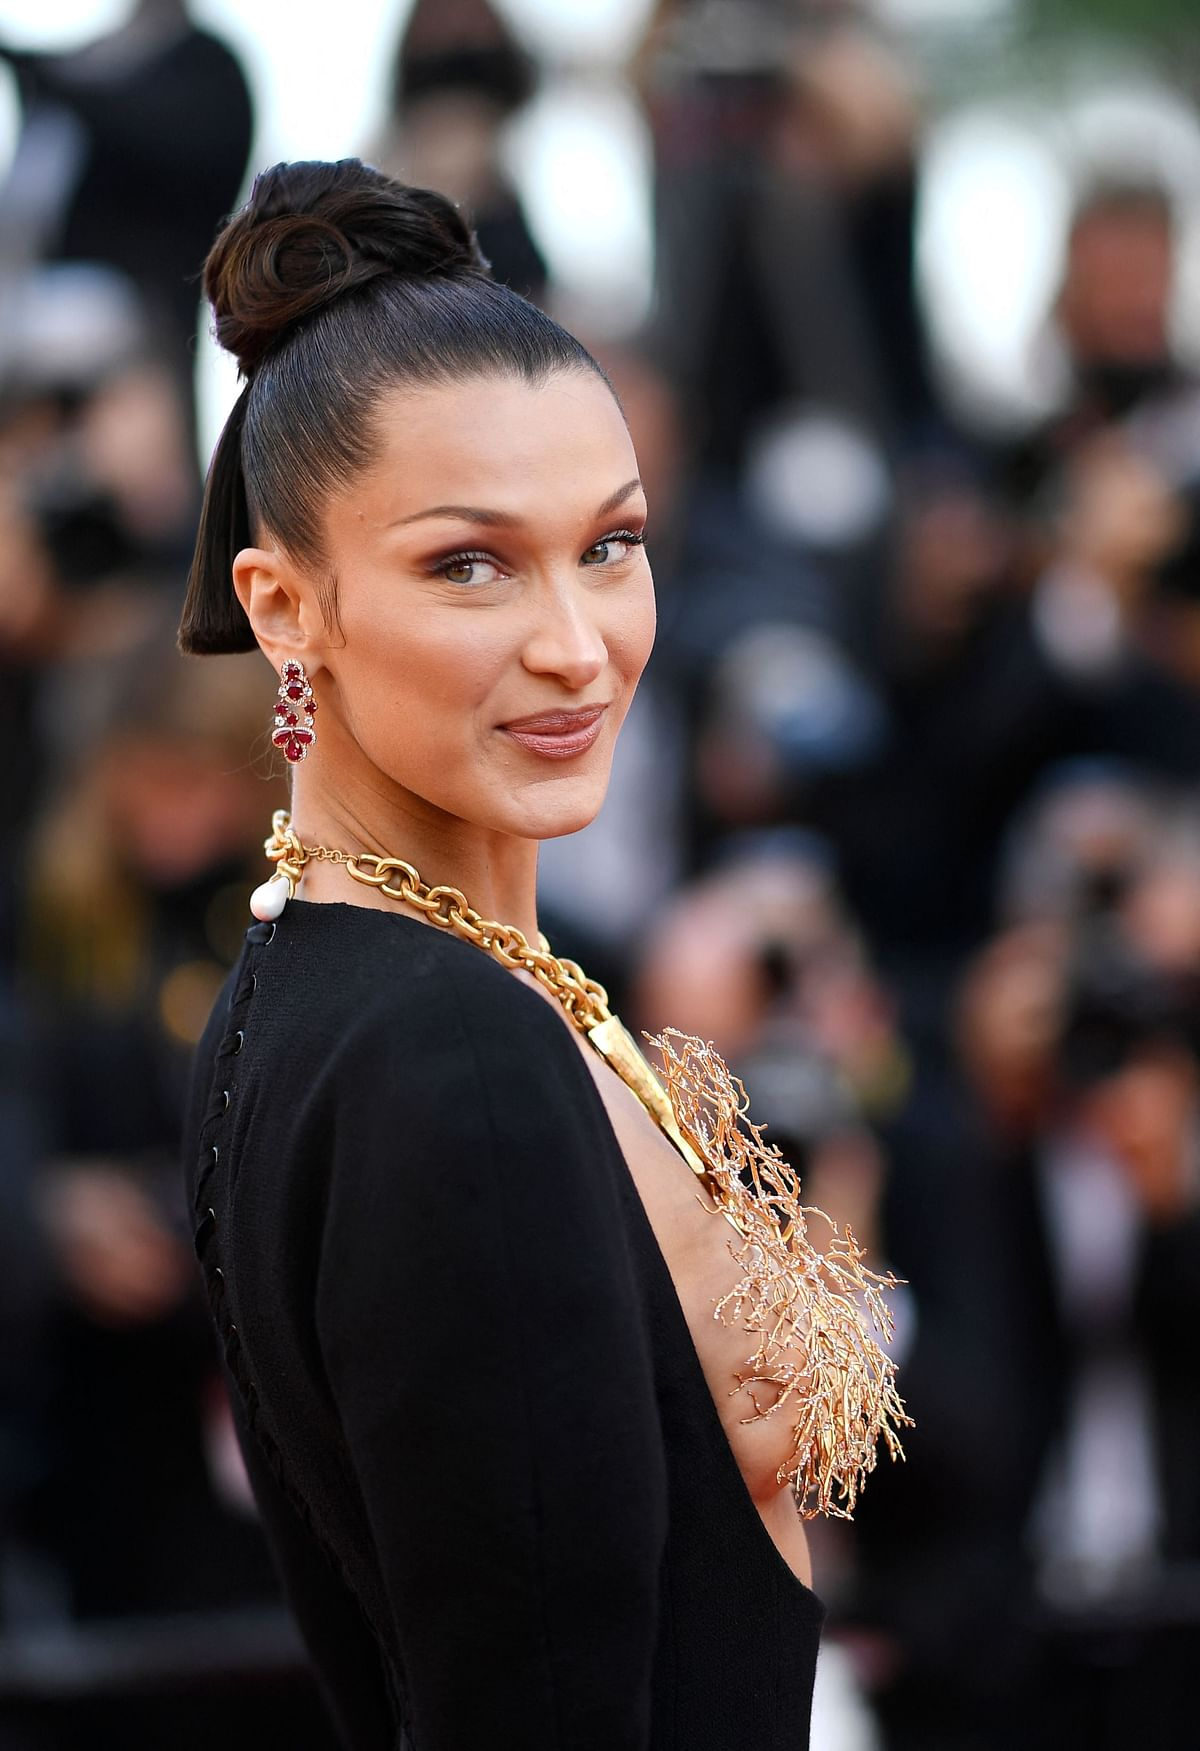 Cannes 2021: Bella Hadid wears a gold lung necklace to cover her breasts in this risqué outfit – see pics